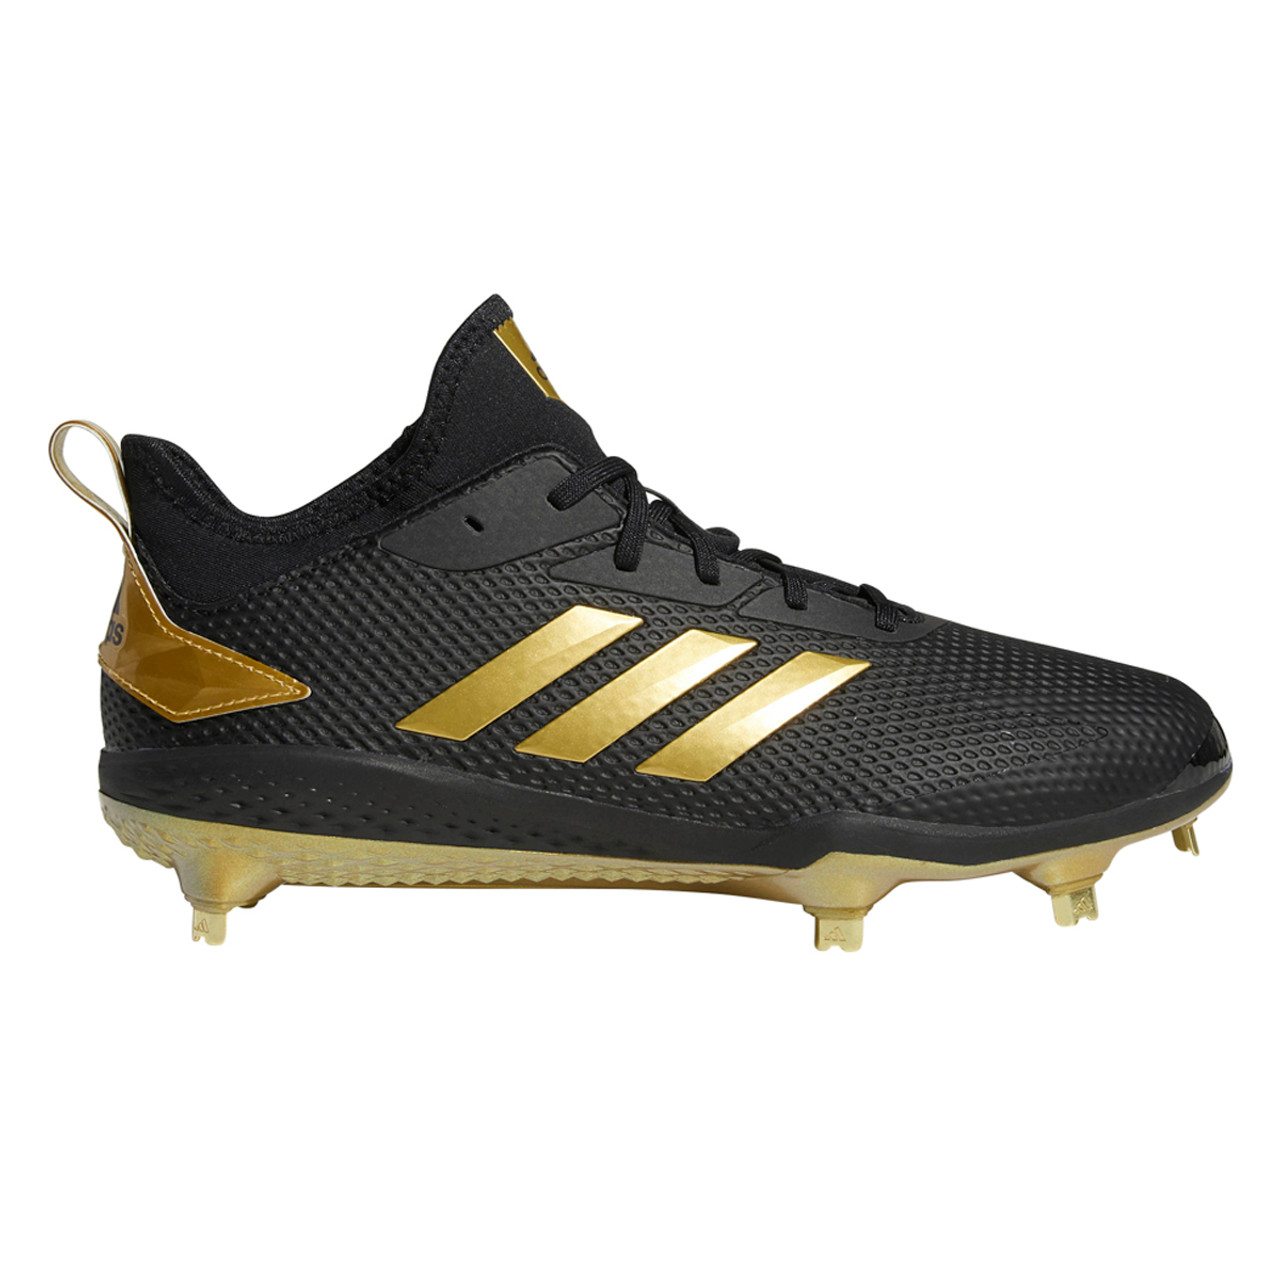 sports shoes 66a05 f9fbd Adidas Adizero Afterburner V Mens Baseball Cleats CG5223 ...